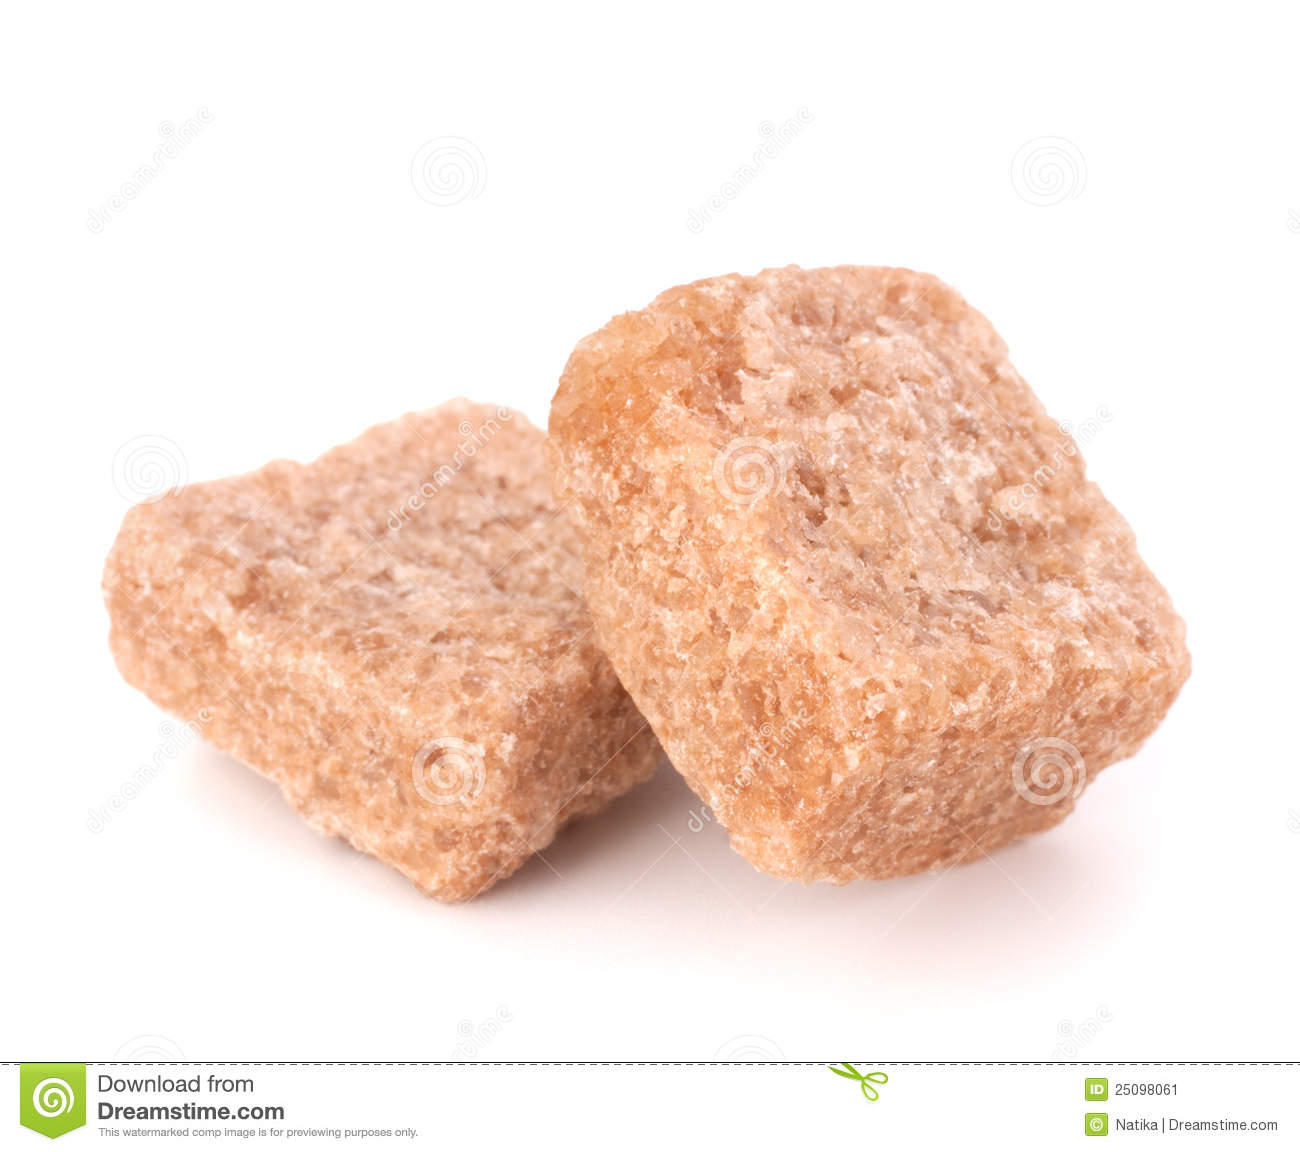 Lump Brown Cane Sugar Cubes Stock Image   Image  25098061